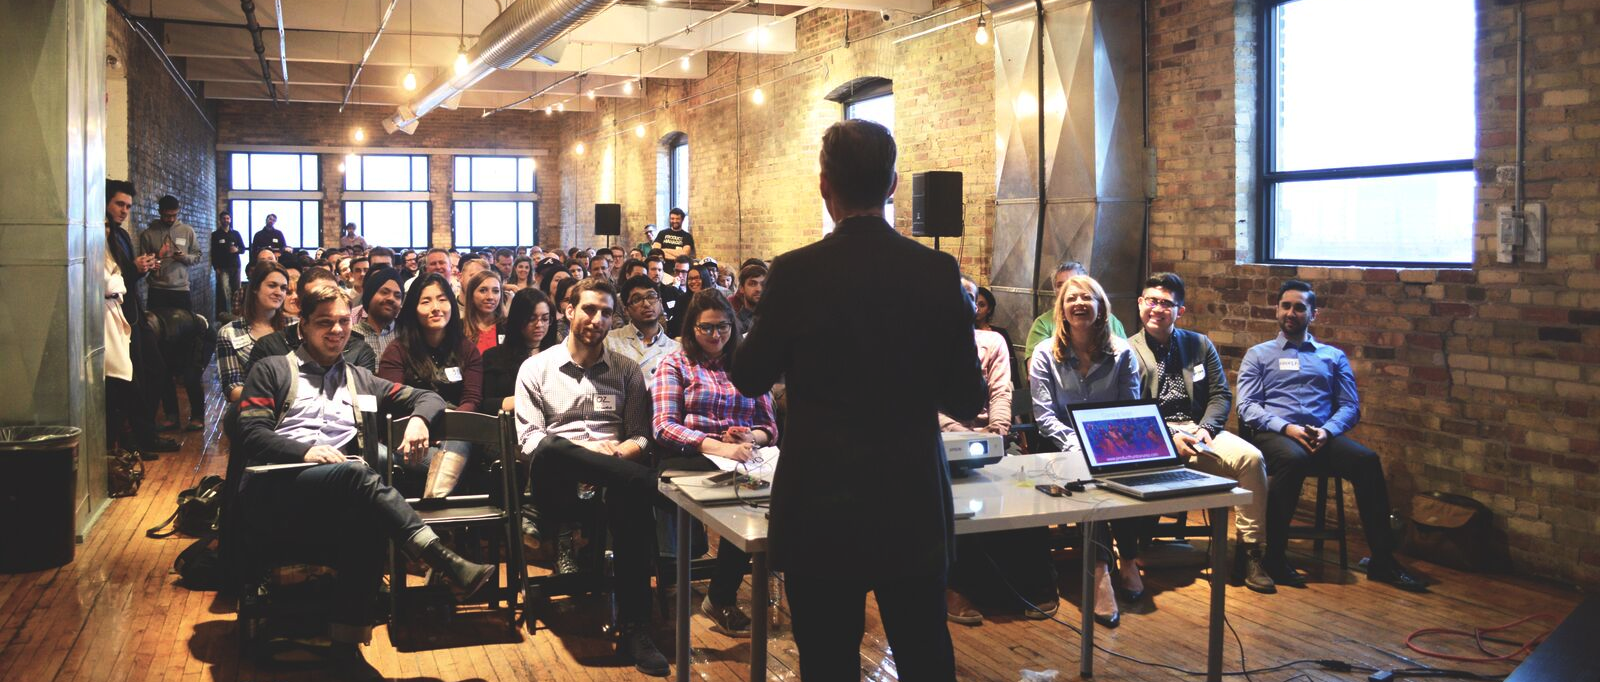 Product Hunt Toronto - March 25th 2015 - Burroughes Events